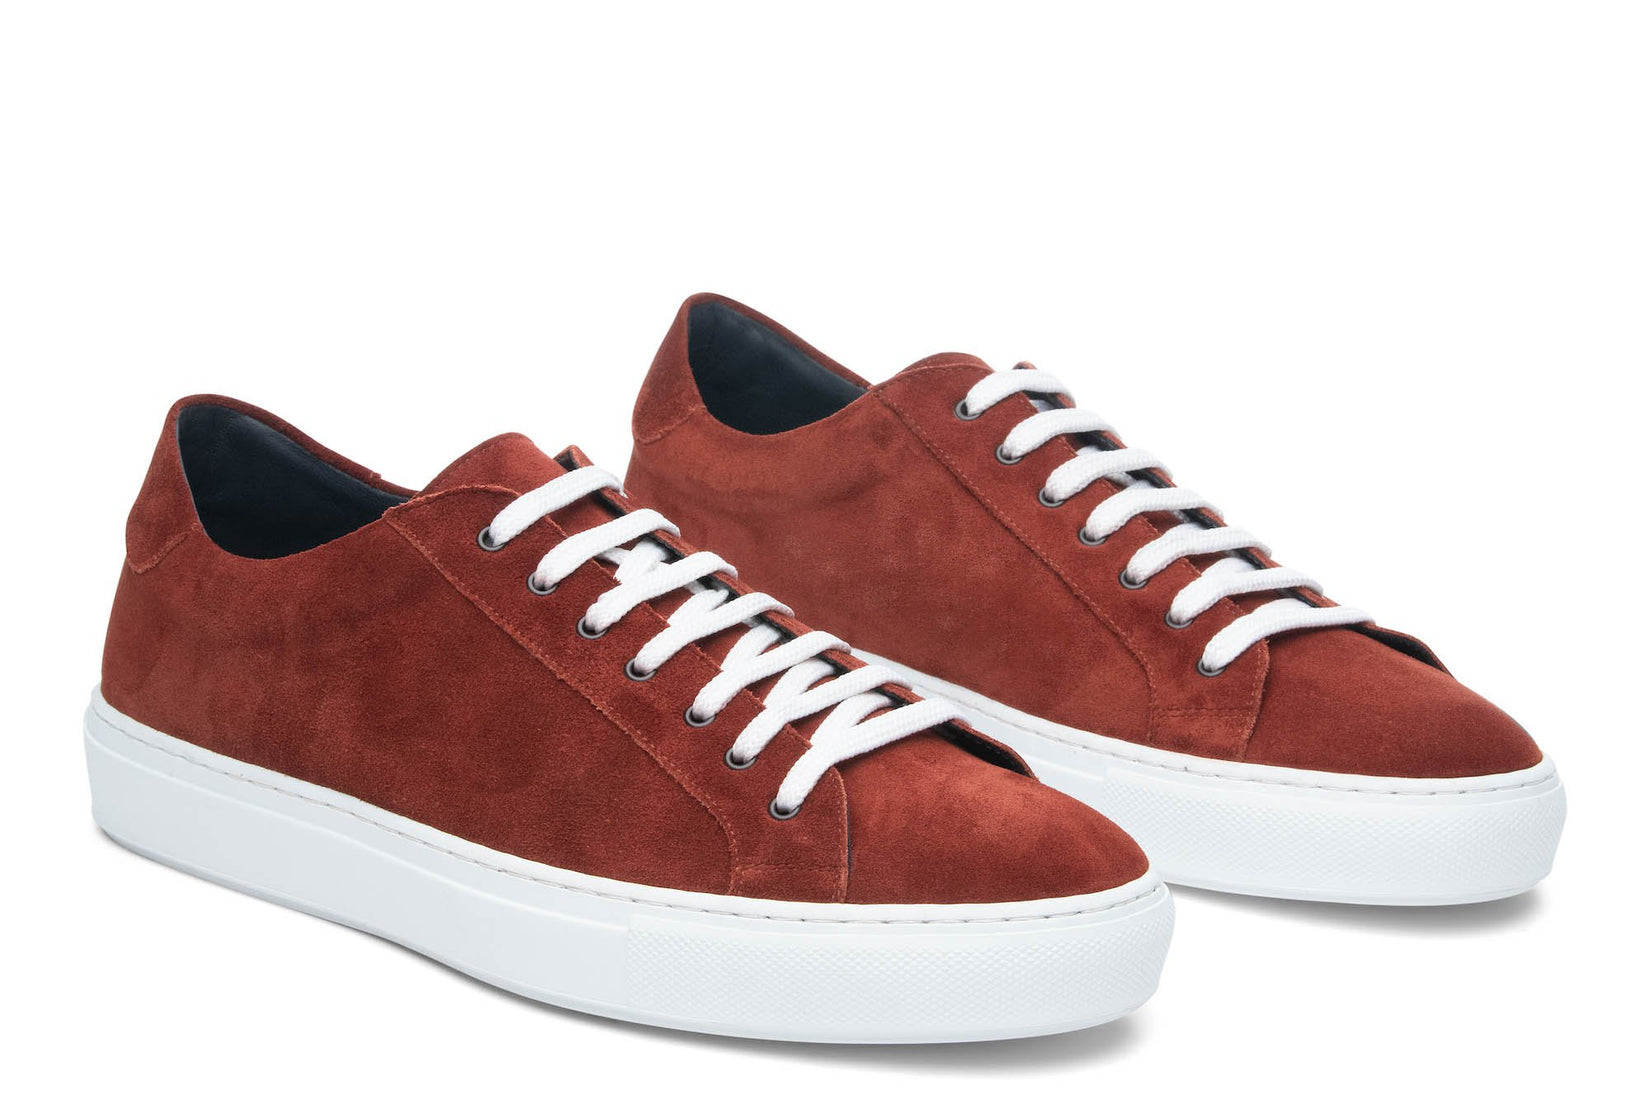 Saturday Lace-Up Sneaker in Brick